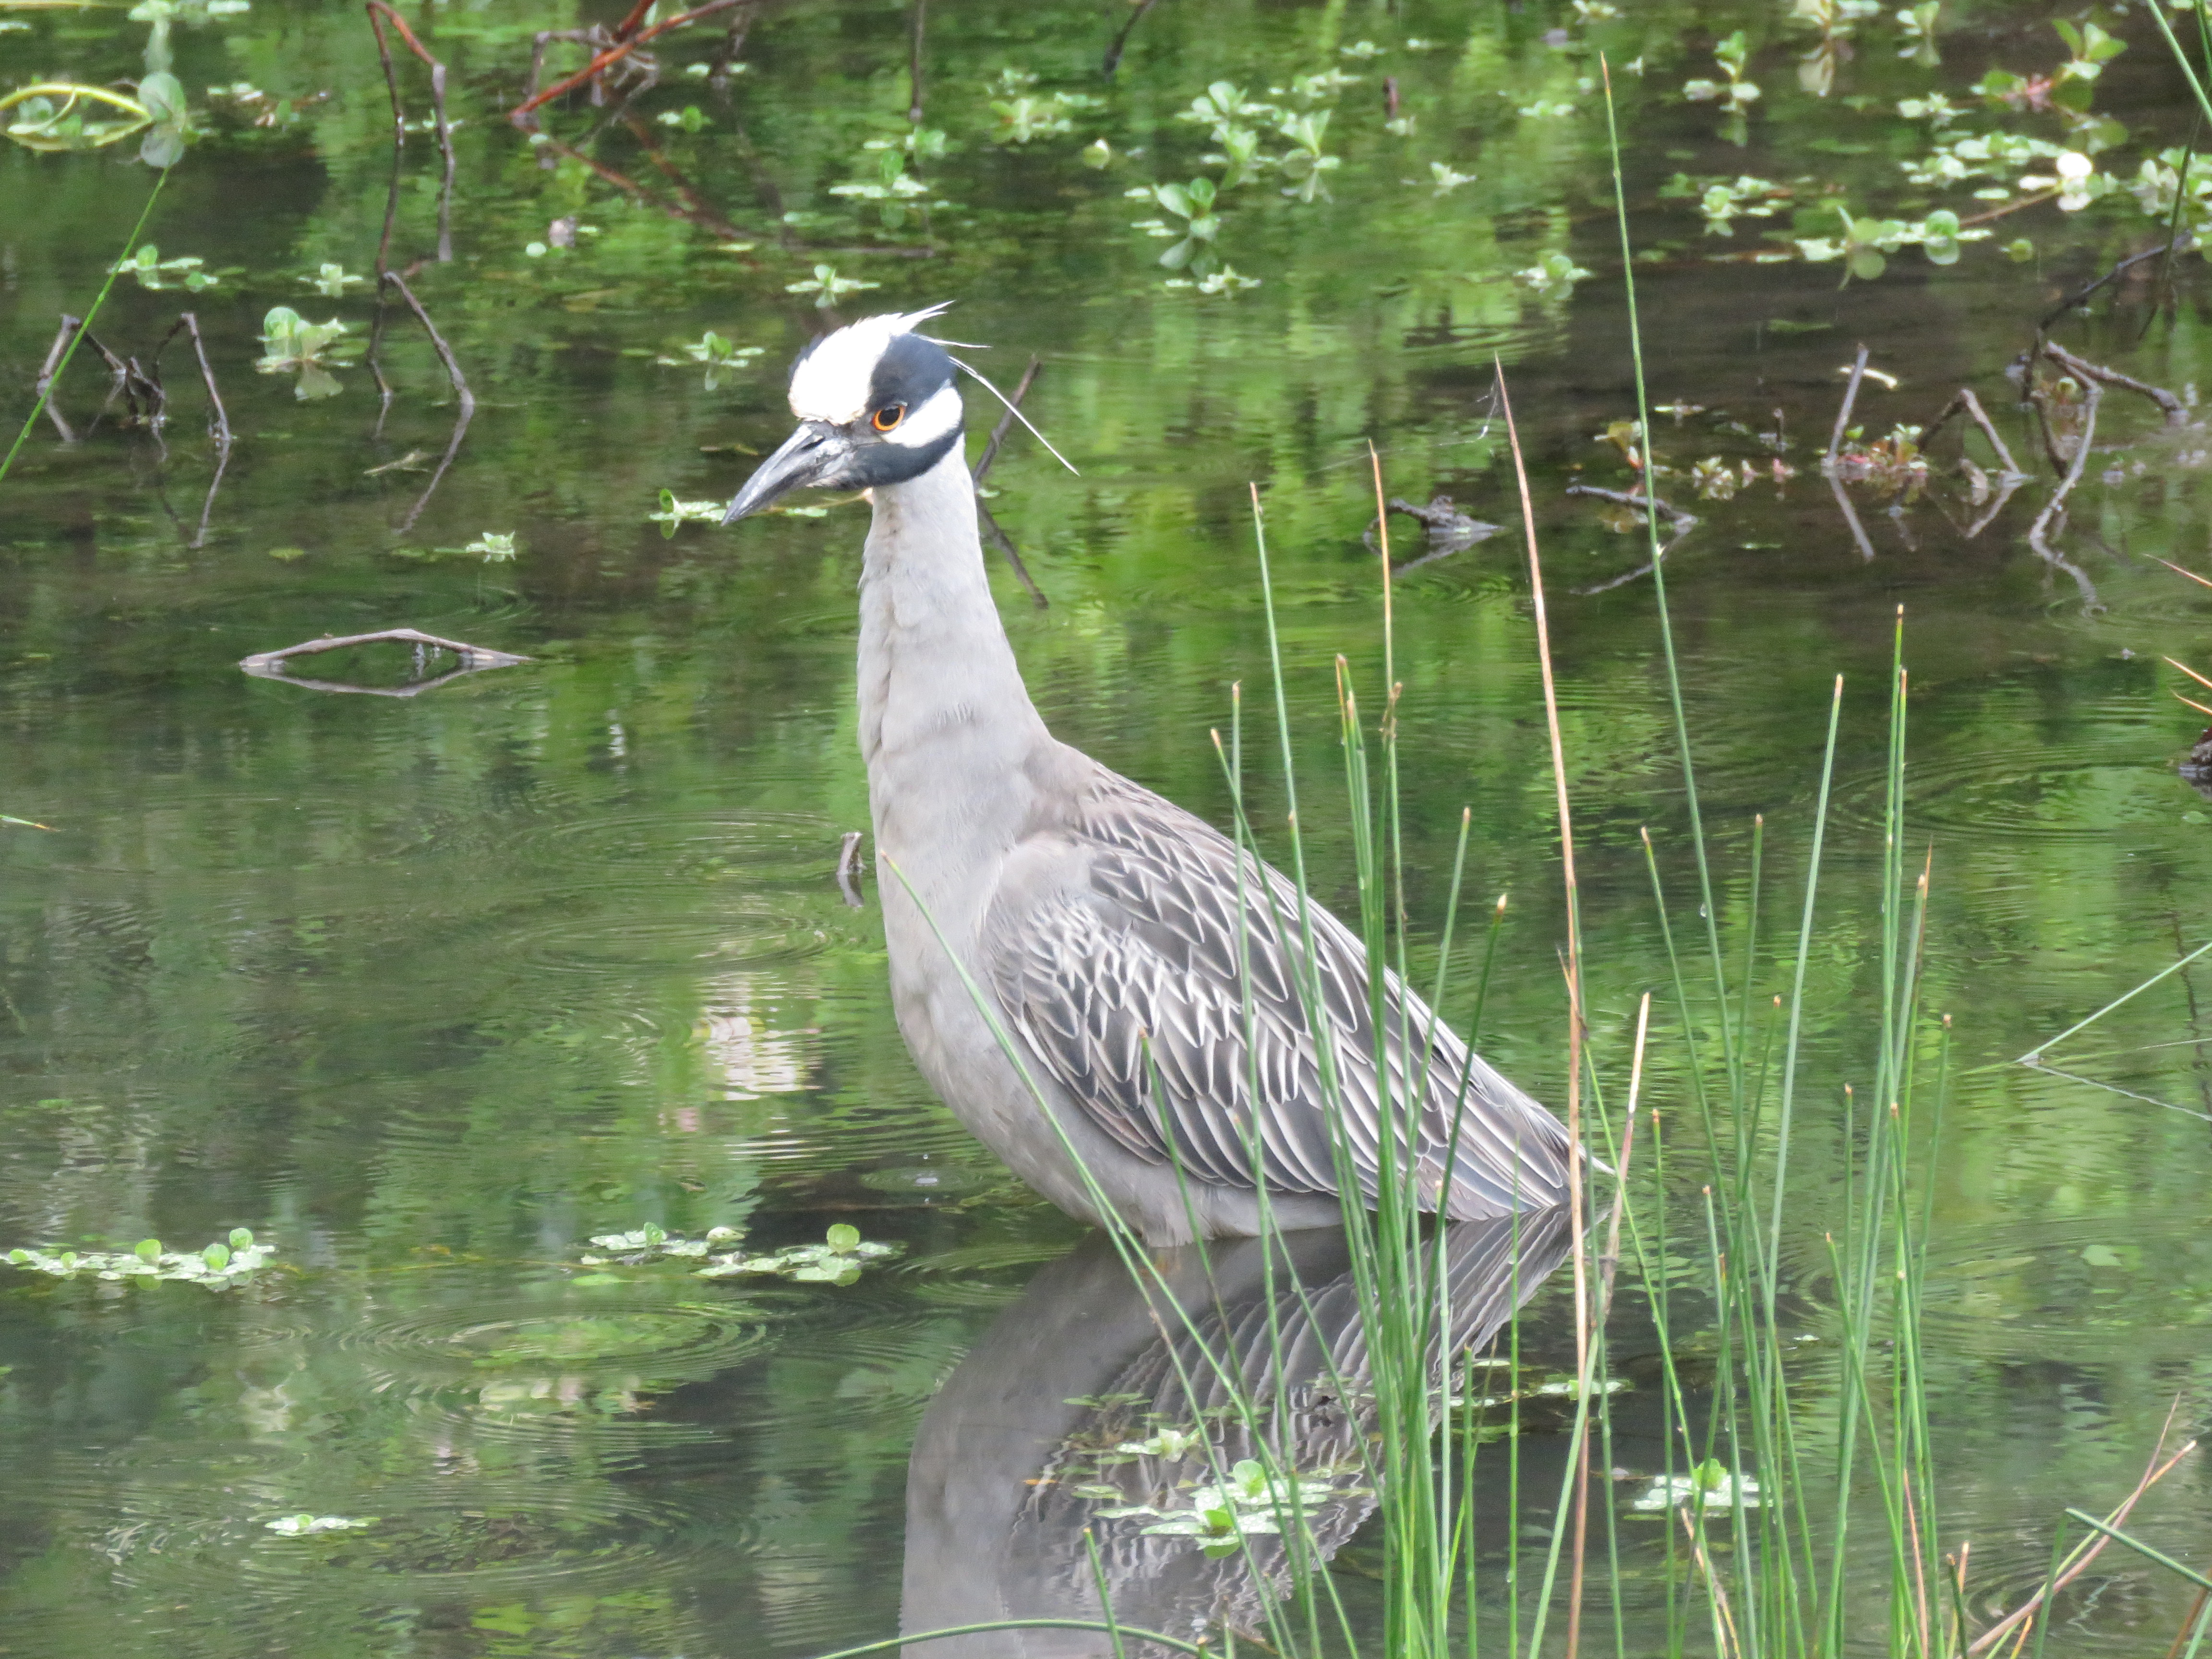 Yellow-crowned Night-Heron, photo by Fred Shaffer. University of Maryland Campus, May 1, 2016. Macaulay LIbrary ML27955371